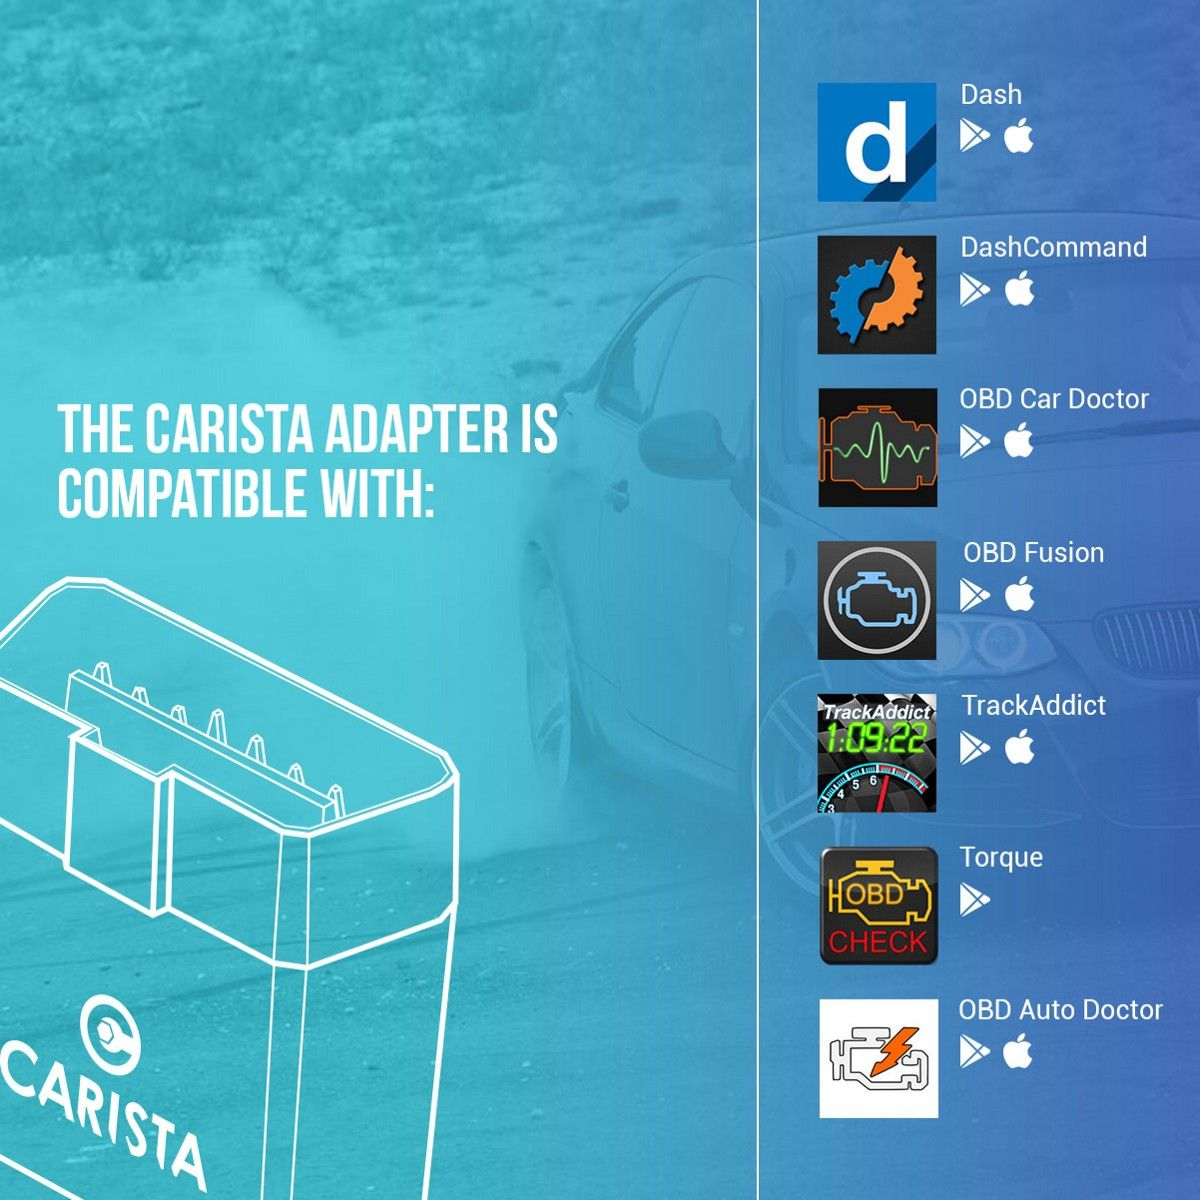 The Carista adapter is open and compatible not only with